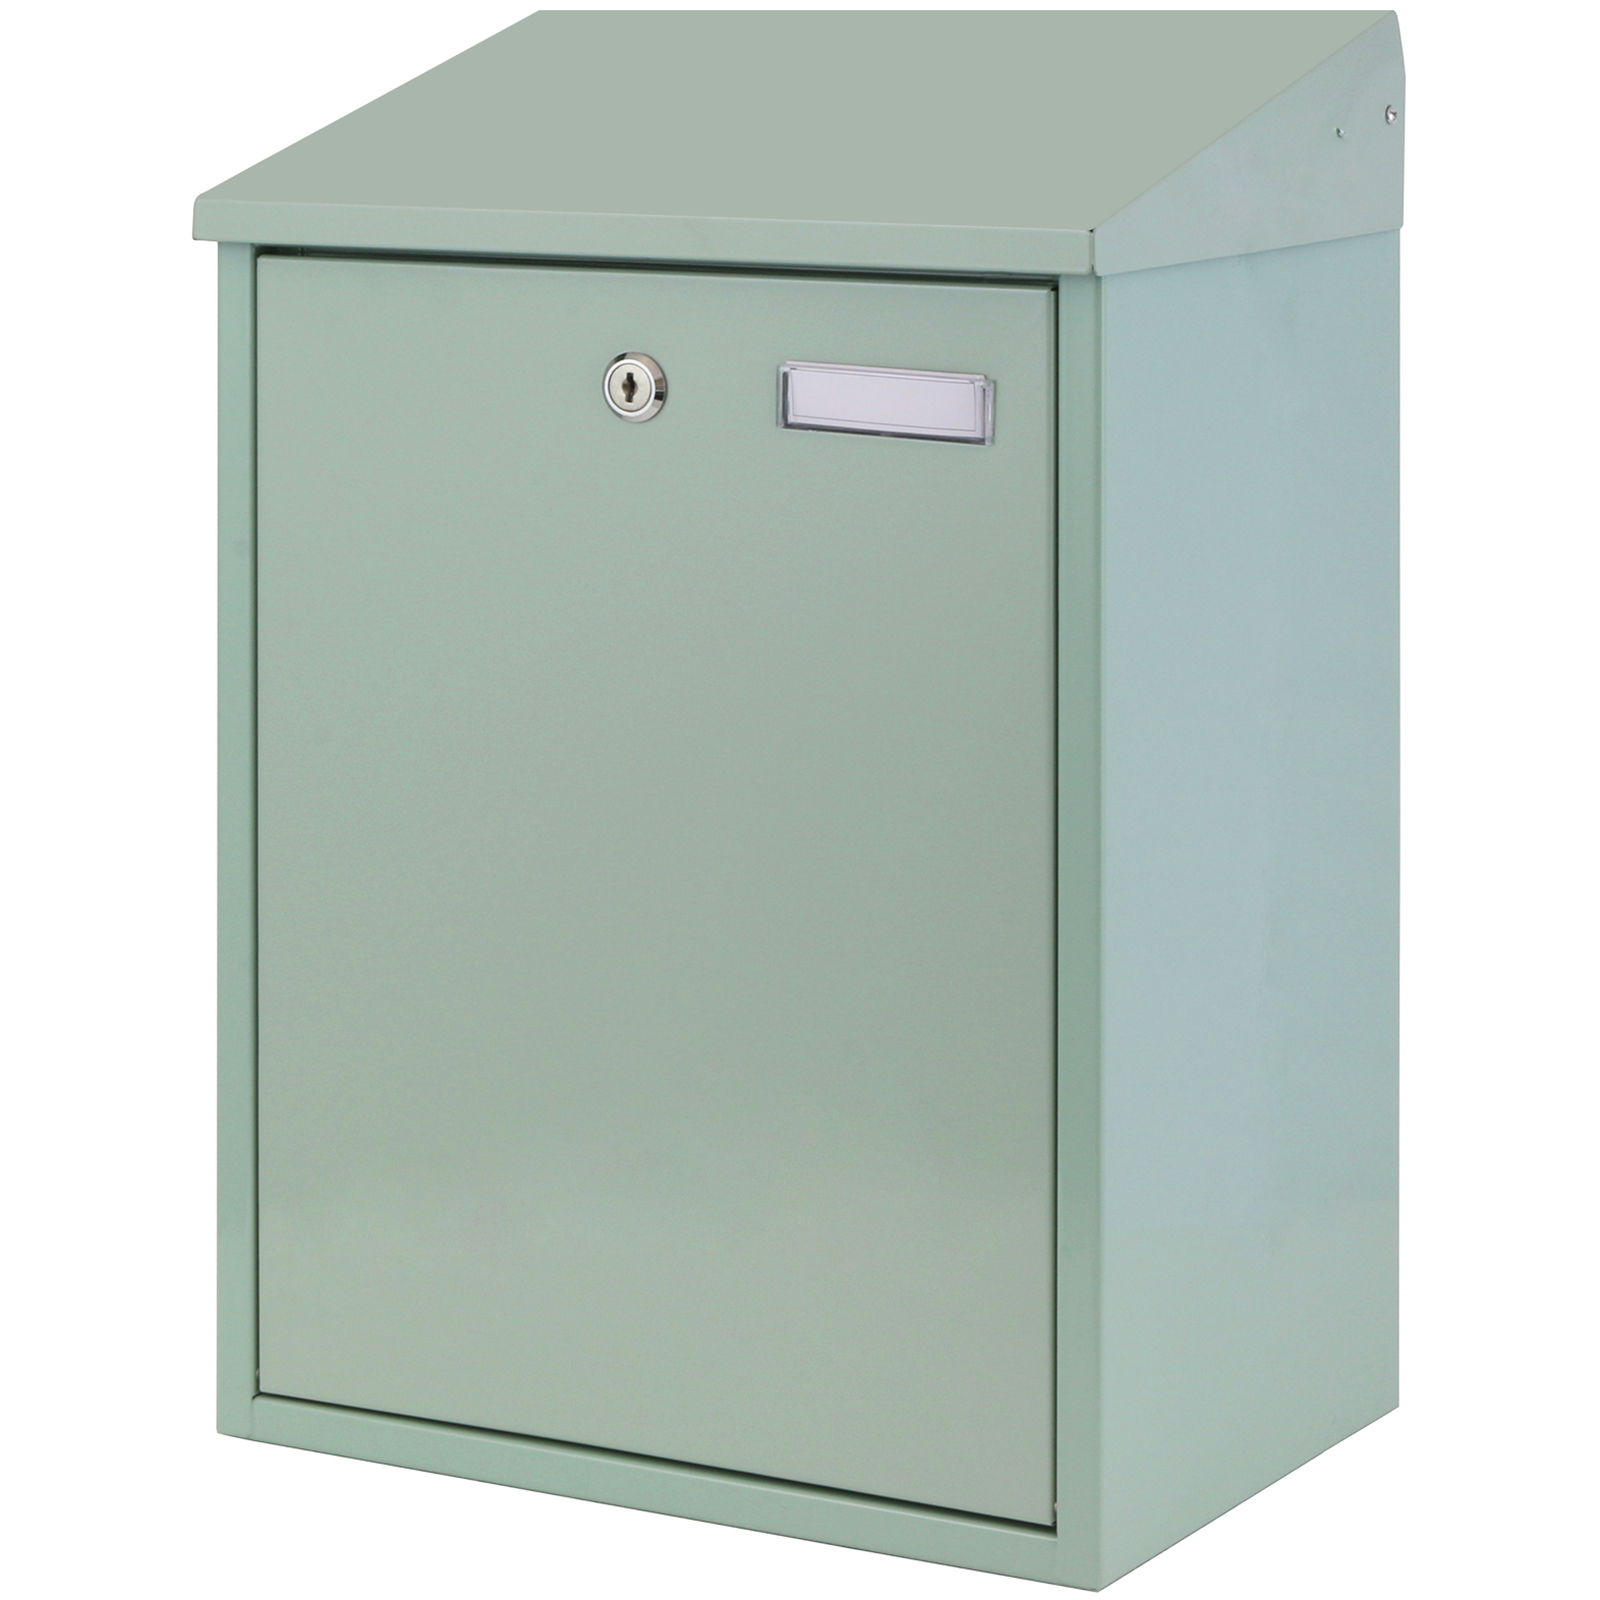 Large Green Lockable Outdoor Mailbox Postbox Letter Mail